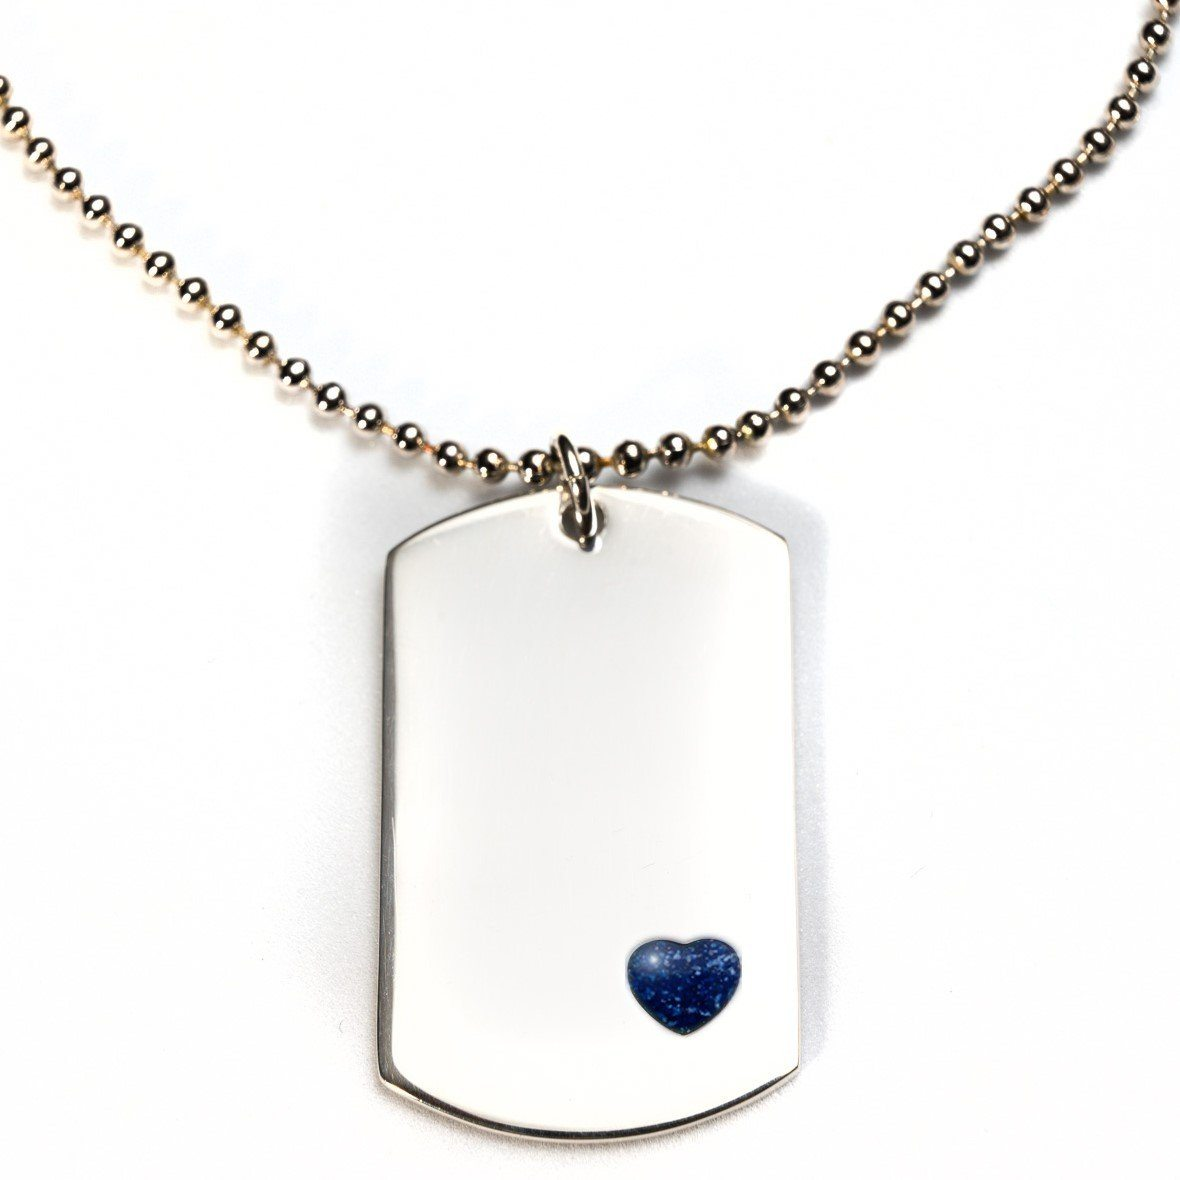 Sterling-Silver Dog Tag with Everence Inlay - Large Everence Navy